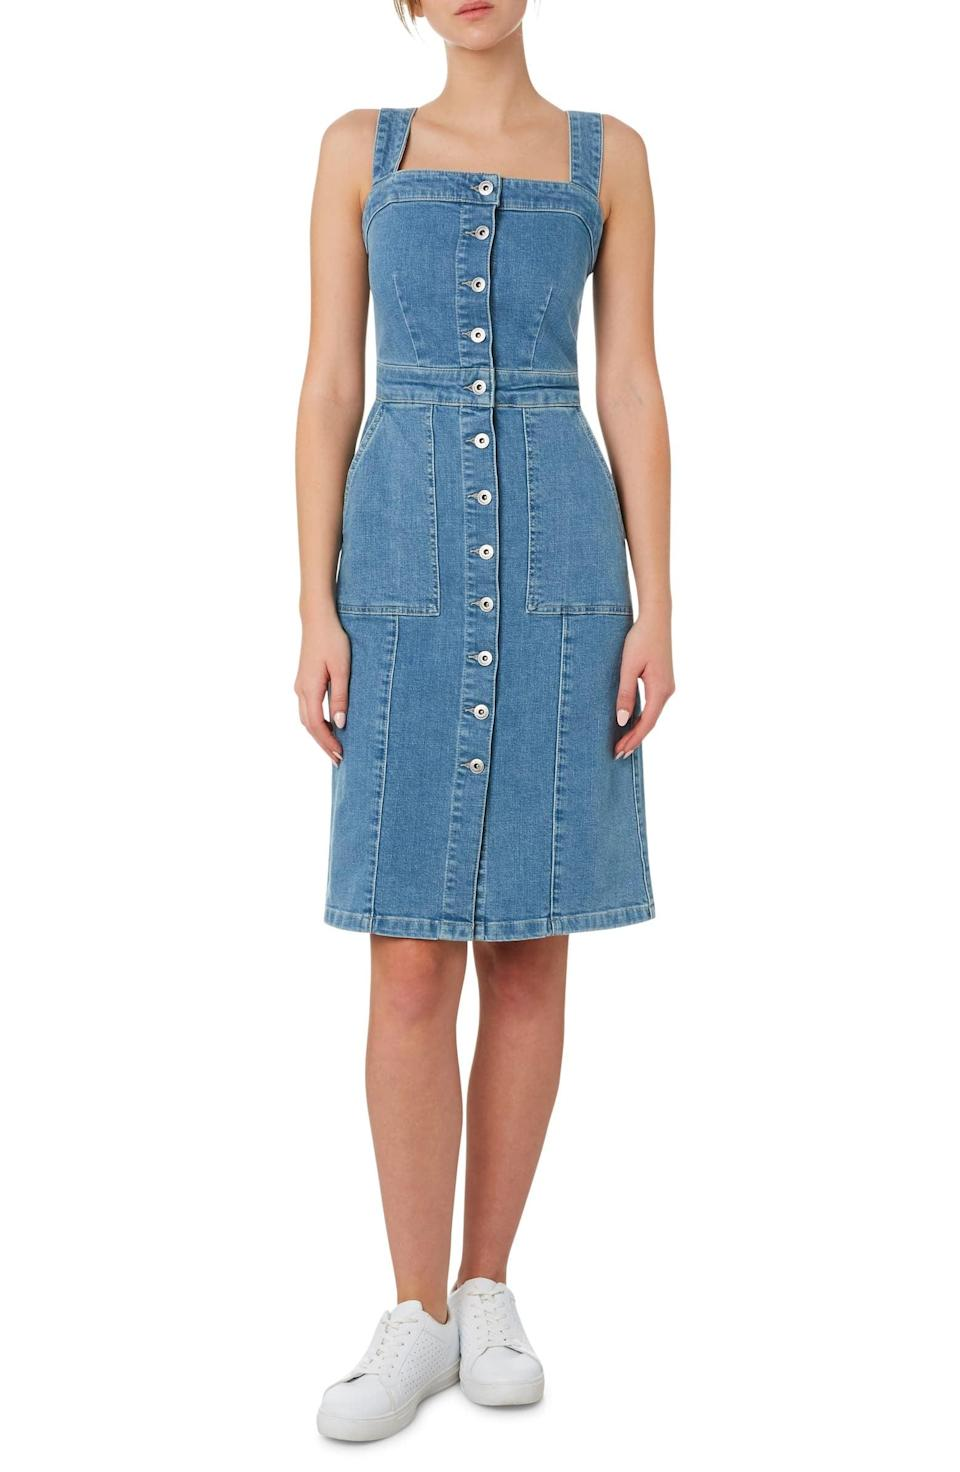 "<p>This <a href=""https://www.popsugar.com/buy/Outland-Denim-Button-Front-Stretch-Organic-Cotton-Dress-582012?p_name=Outland%20Denim%20Button%20Front%20Stretch%20Organic%20Cotton%20Dress&retailer=shop.nordstrom.com&pid=582012&price=265&evar1=fab%3Aus&evar9=35329485&evar98=https%3A%2F%2Fwww.popsugar.com%2Ffashion%2Fphoto-gallery%2F35329485%2Fimage%2F47550218%2FOutland-Denim-Button-Front-Stretch-Organic-Cotton-Dress&list1=shopping%2Cdenim%2Csummer%20fashion%2Cfashion%20shopping&prop13=mobile&pdata=1"" class=""link rapid-noclick-resp"" rel=""nofollow noopener"" target=""_blank"" data-ylk=""slk:Outland Denim Button Front Stretch Organic Cotton Dress"">Outland Denim Button Front Stretch Organic Cotton Dress</a> ($265) is a comfy pick.</p>"